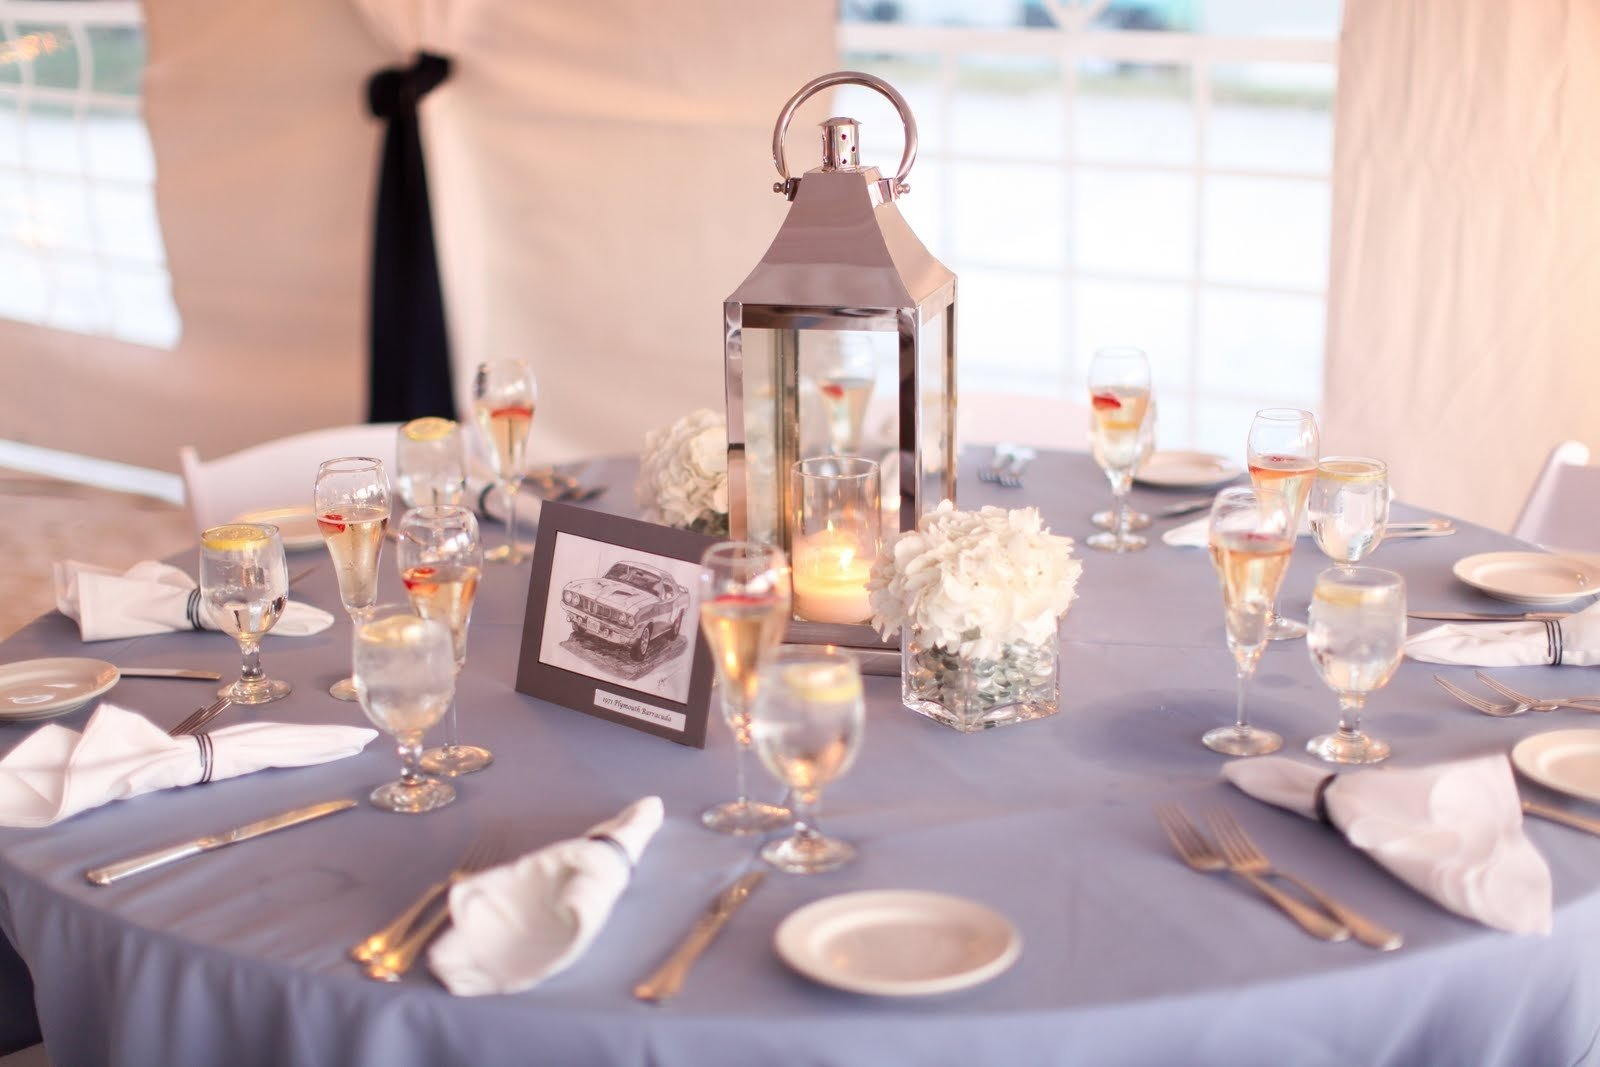 10 most recommended wedding table centerpieces ideas on a budget 10 most recommended wedding table centerpieces ideas on a budget fall wedding centerpiece ideas on a junglespirit Choice Image